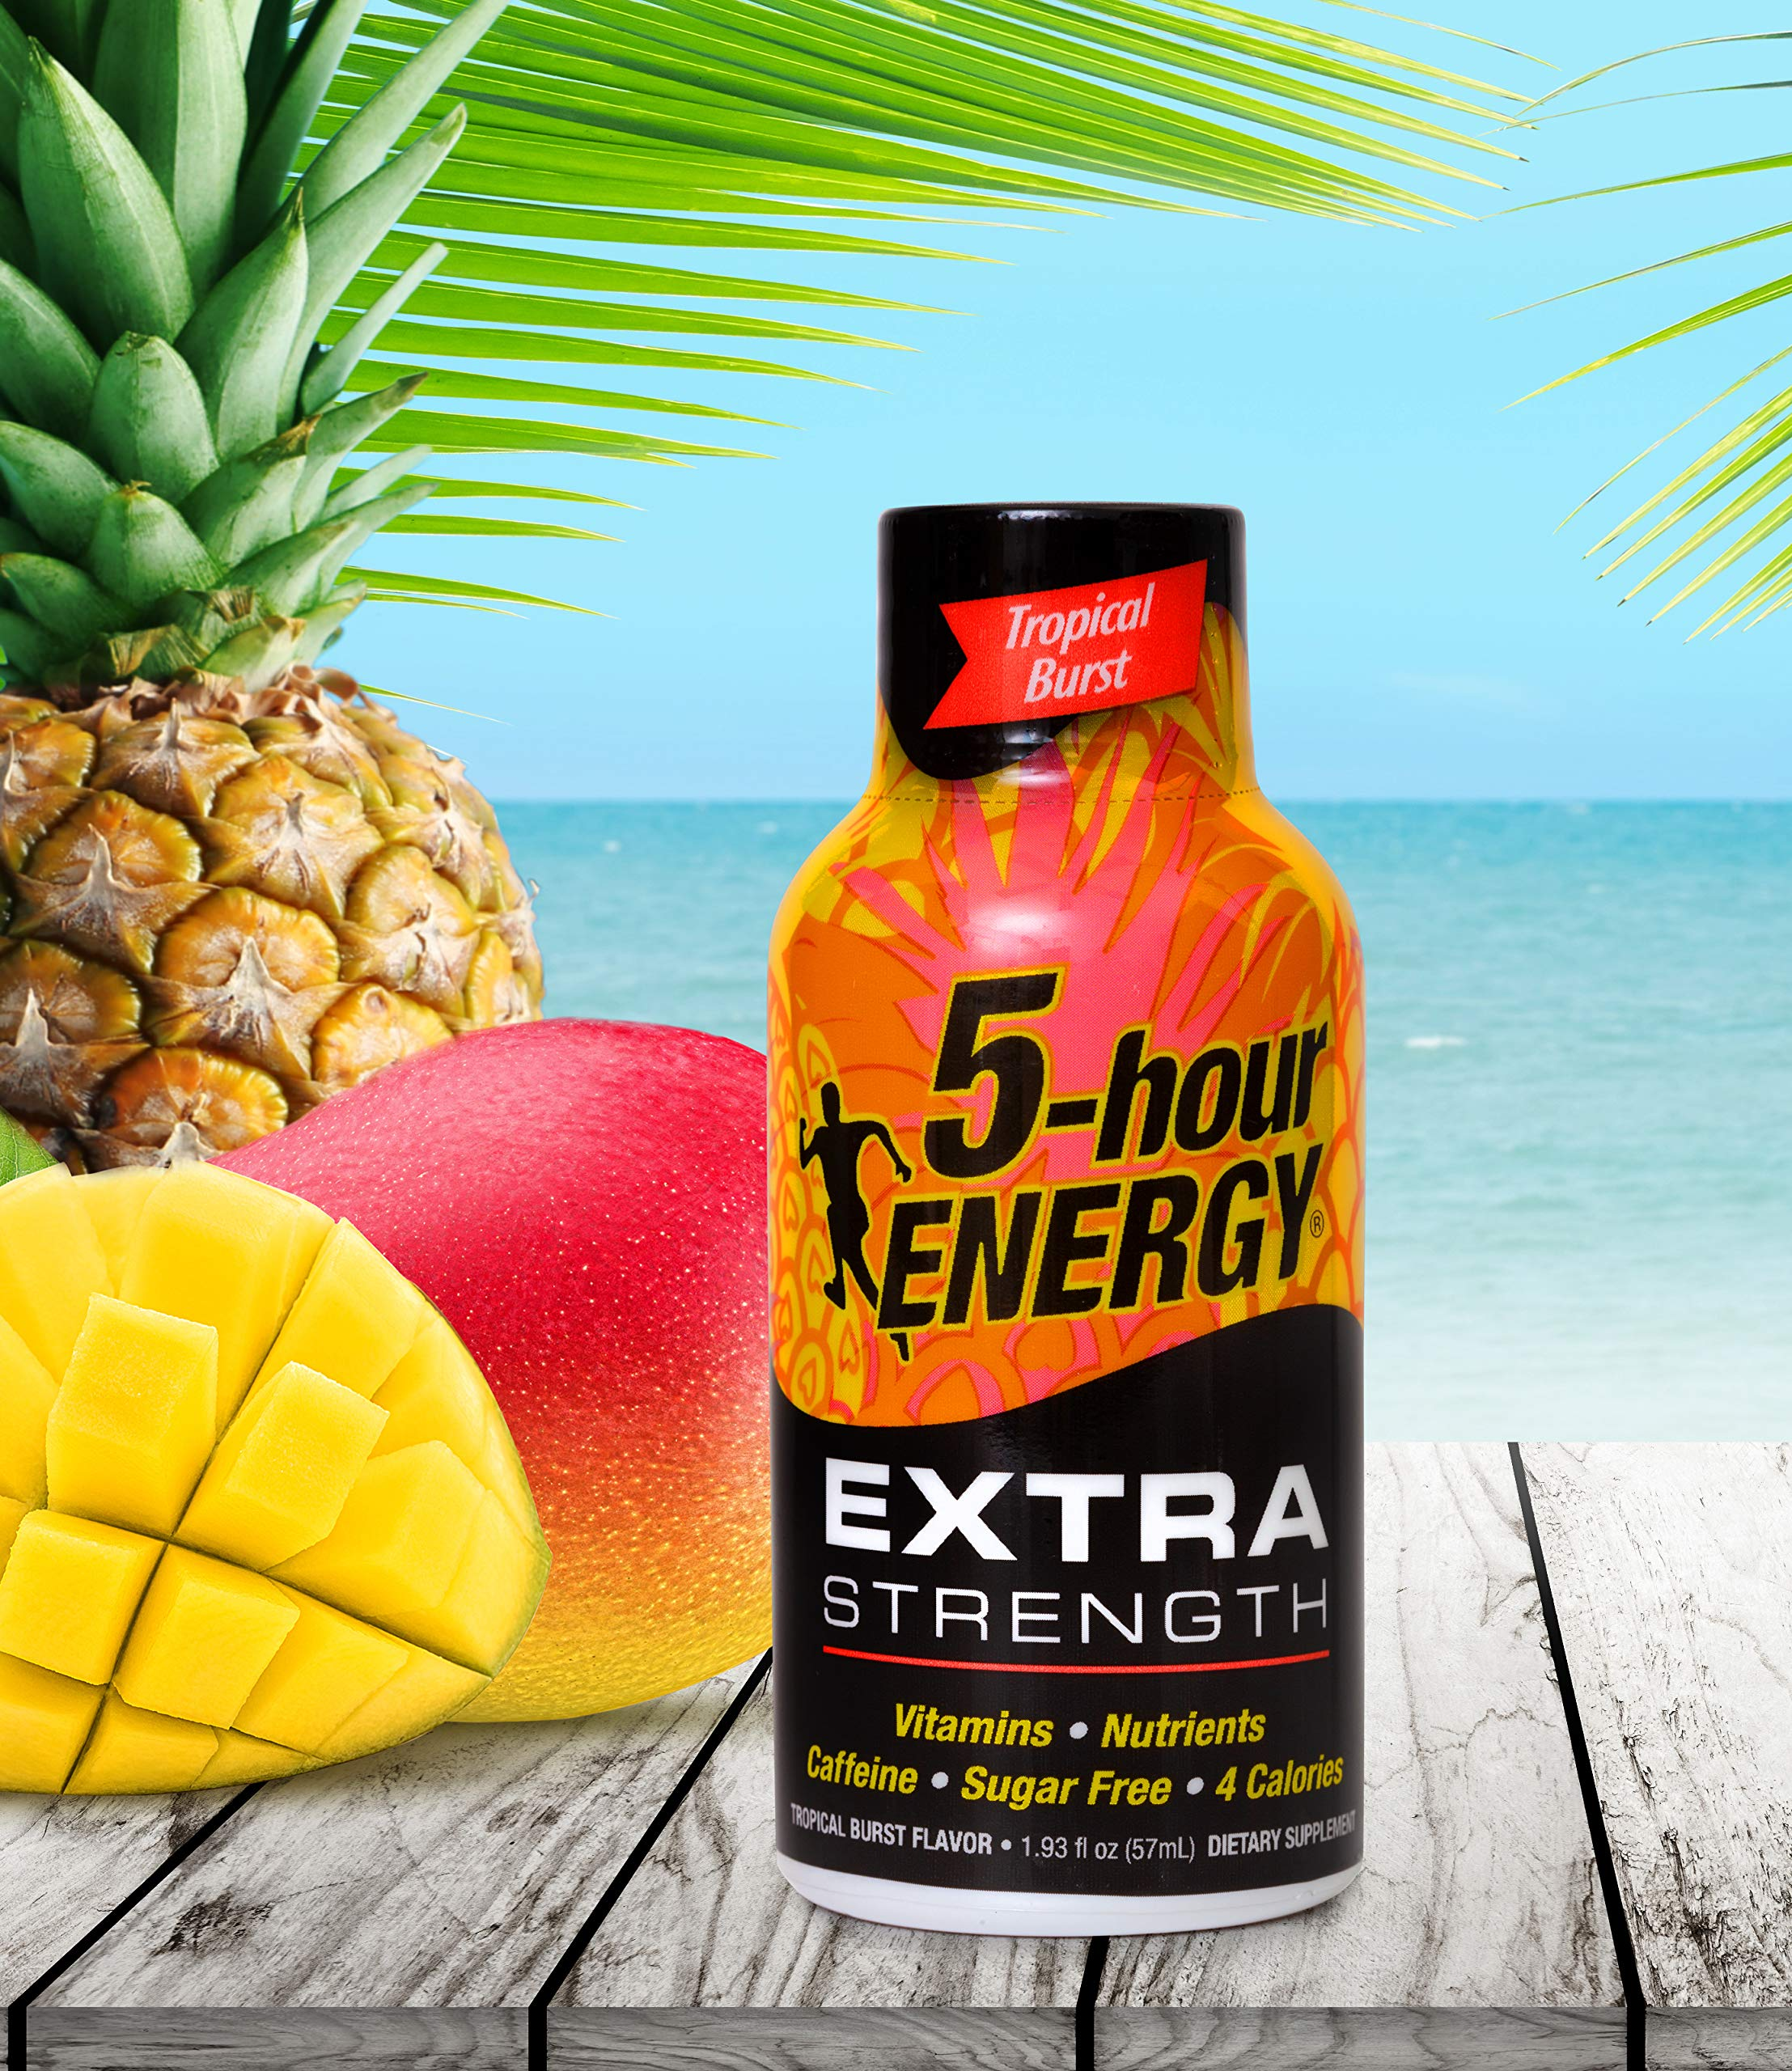 5 Hour Energy Extra Strength, Tropical Burst (12 Count) 7-Eleven Exclusive by 5 Hour Energy (Image #1)